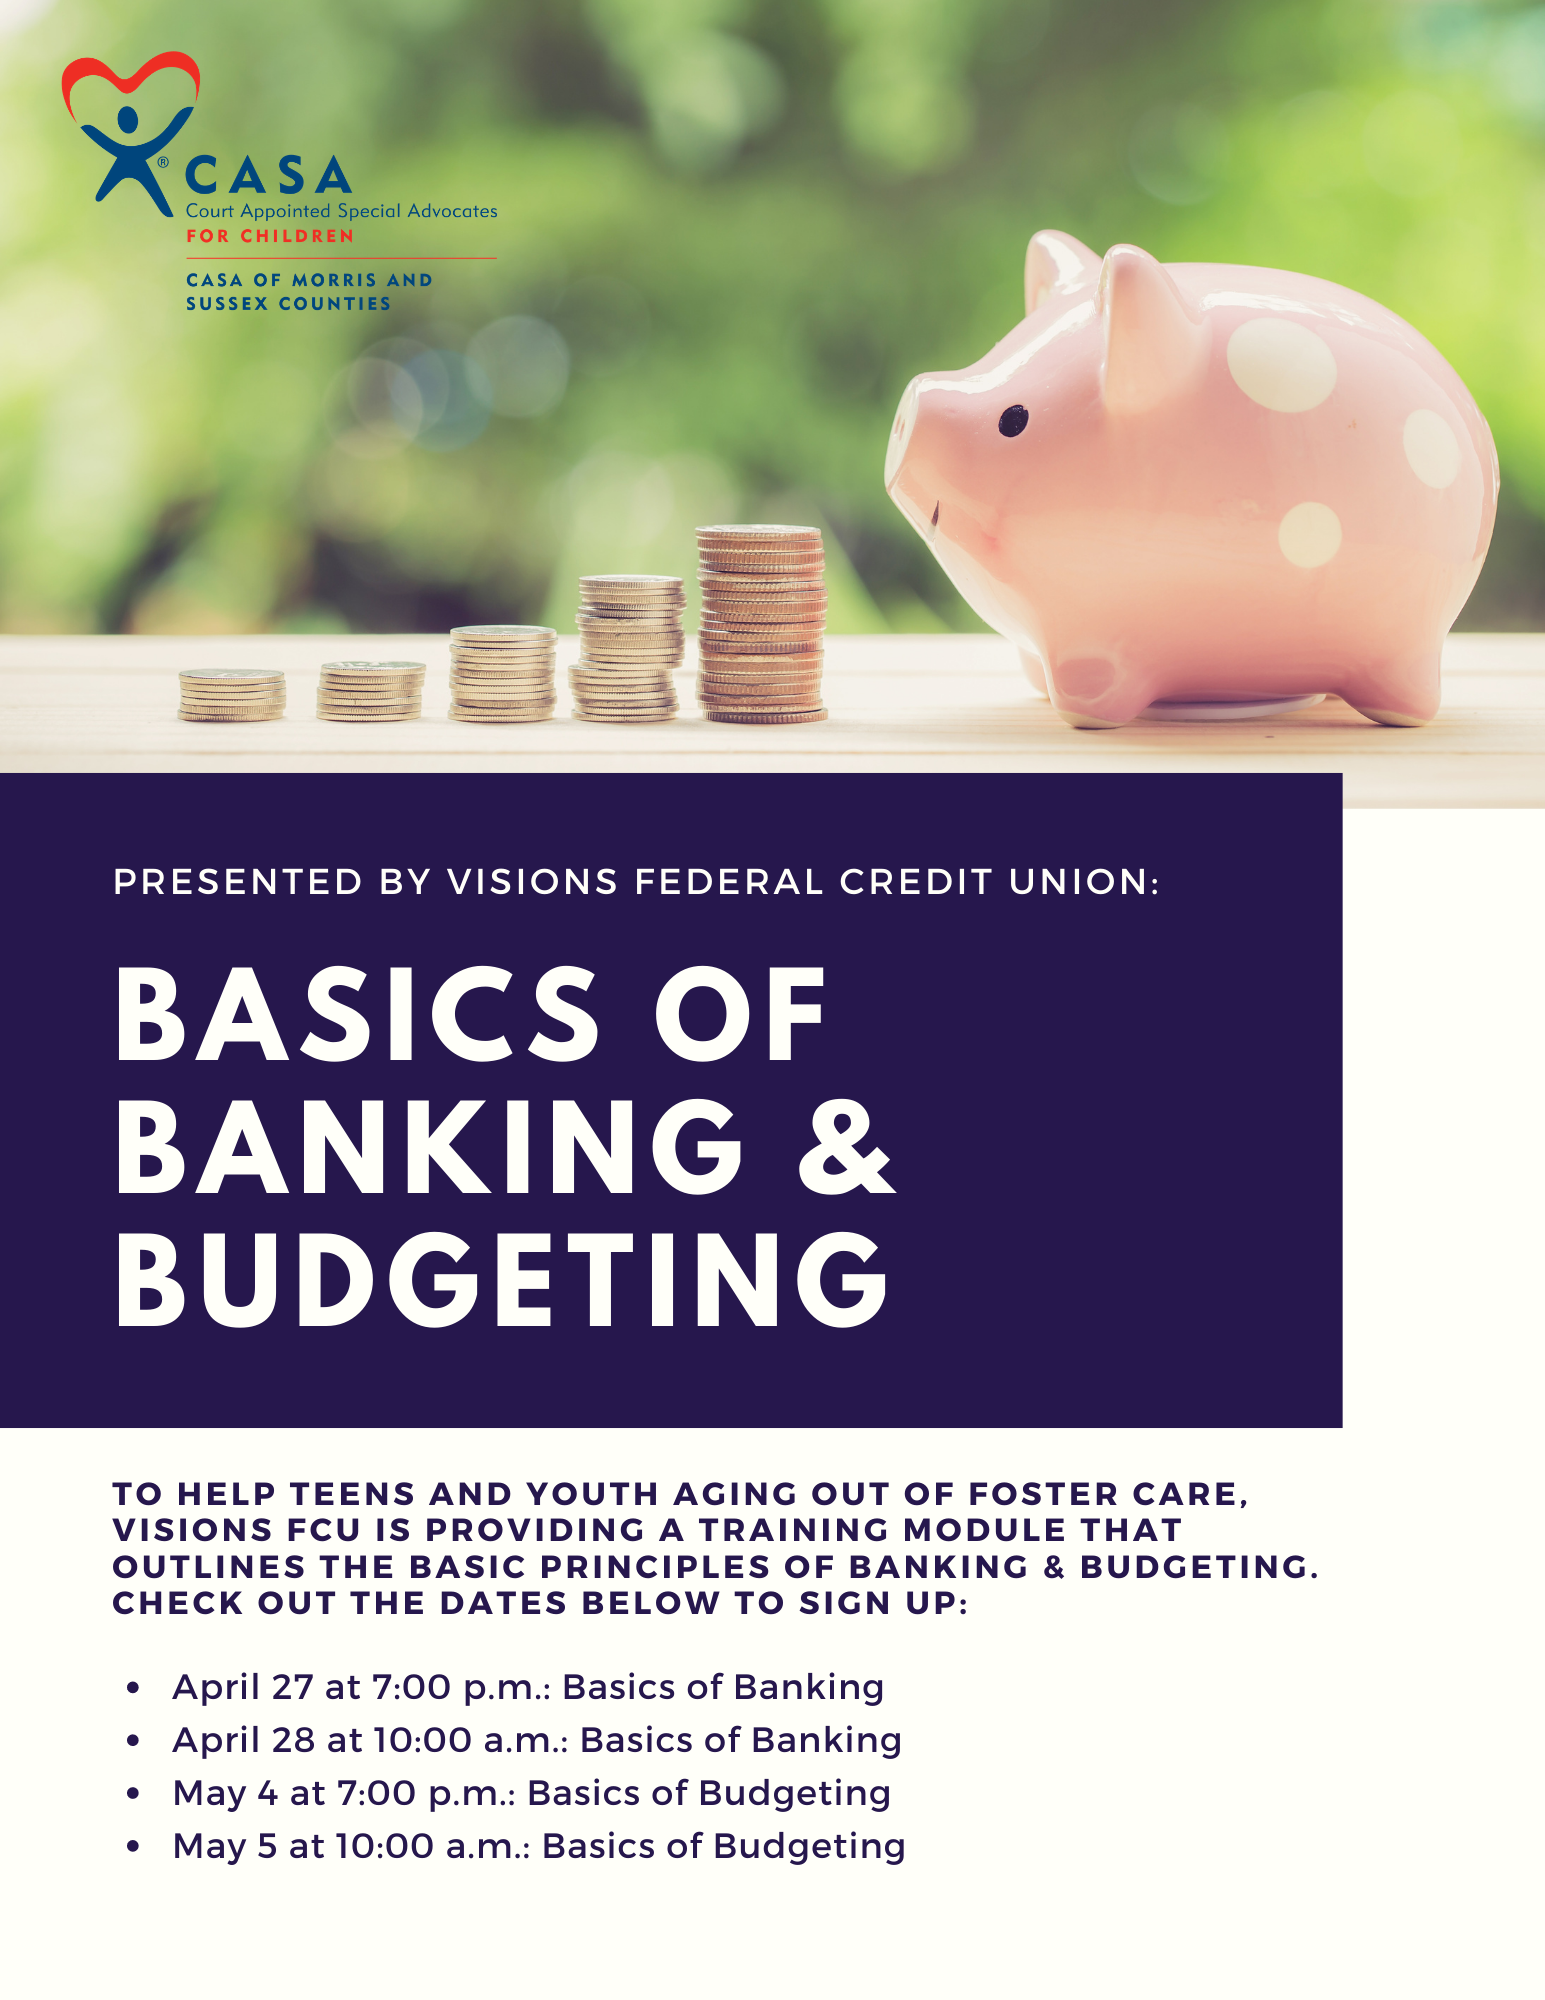 Basics of Budgeting